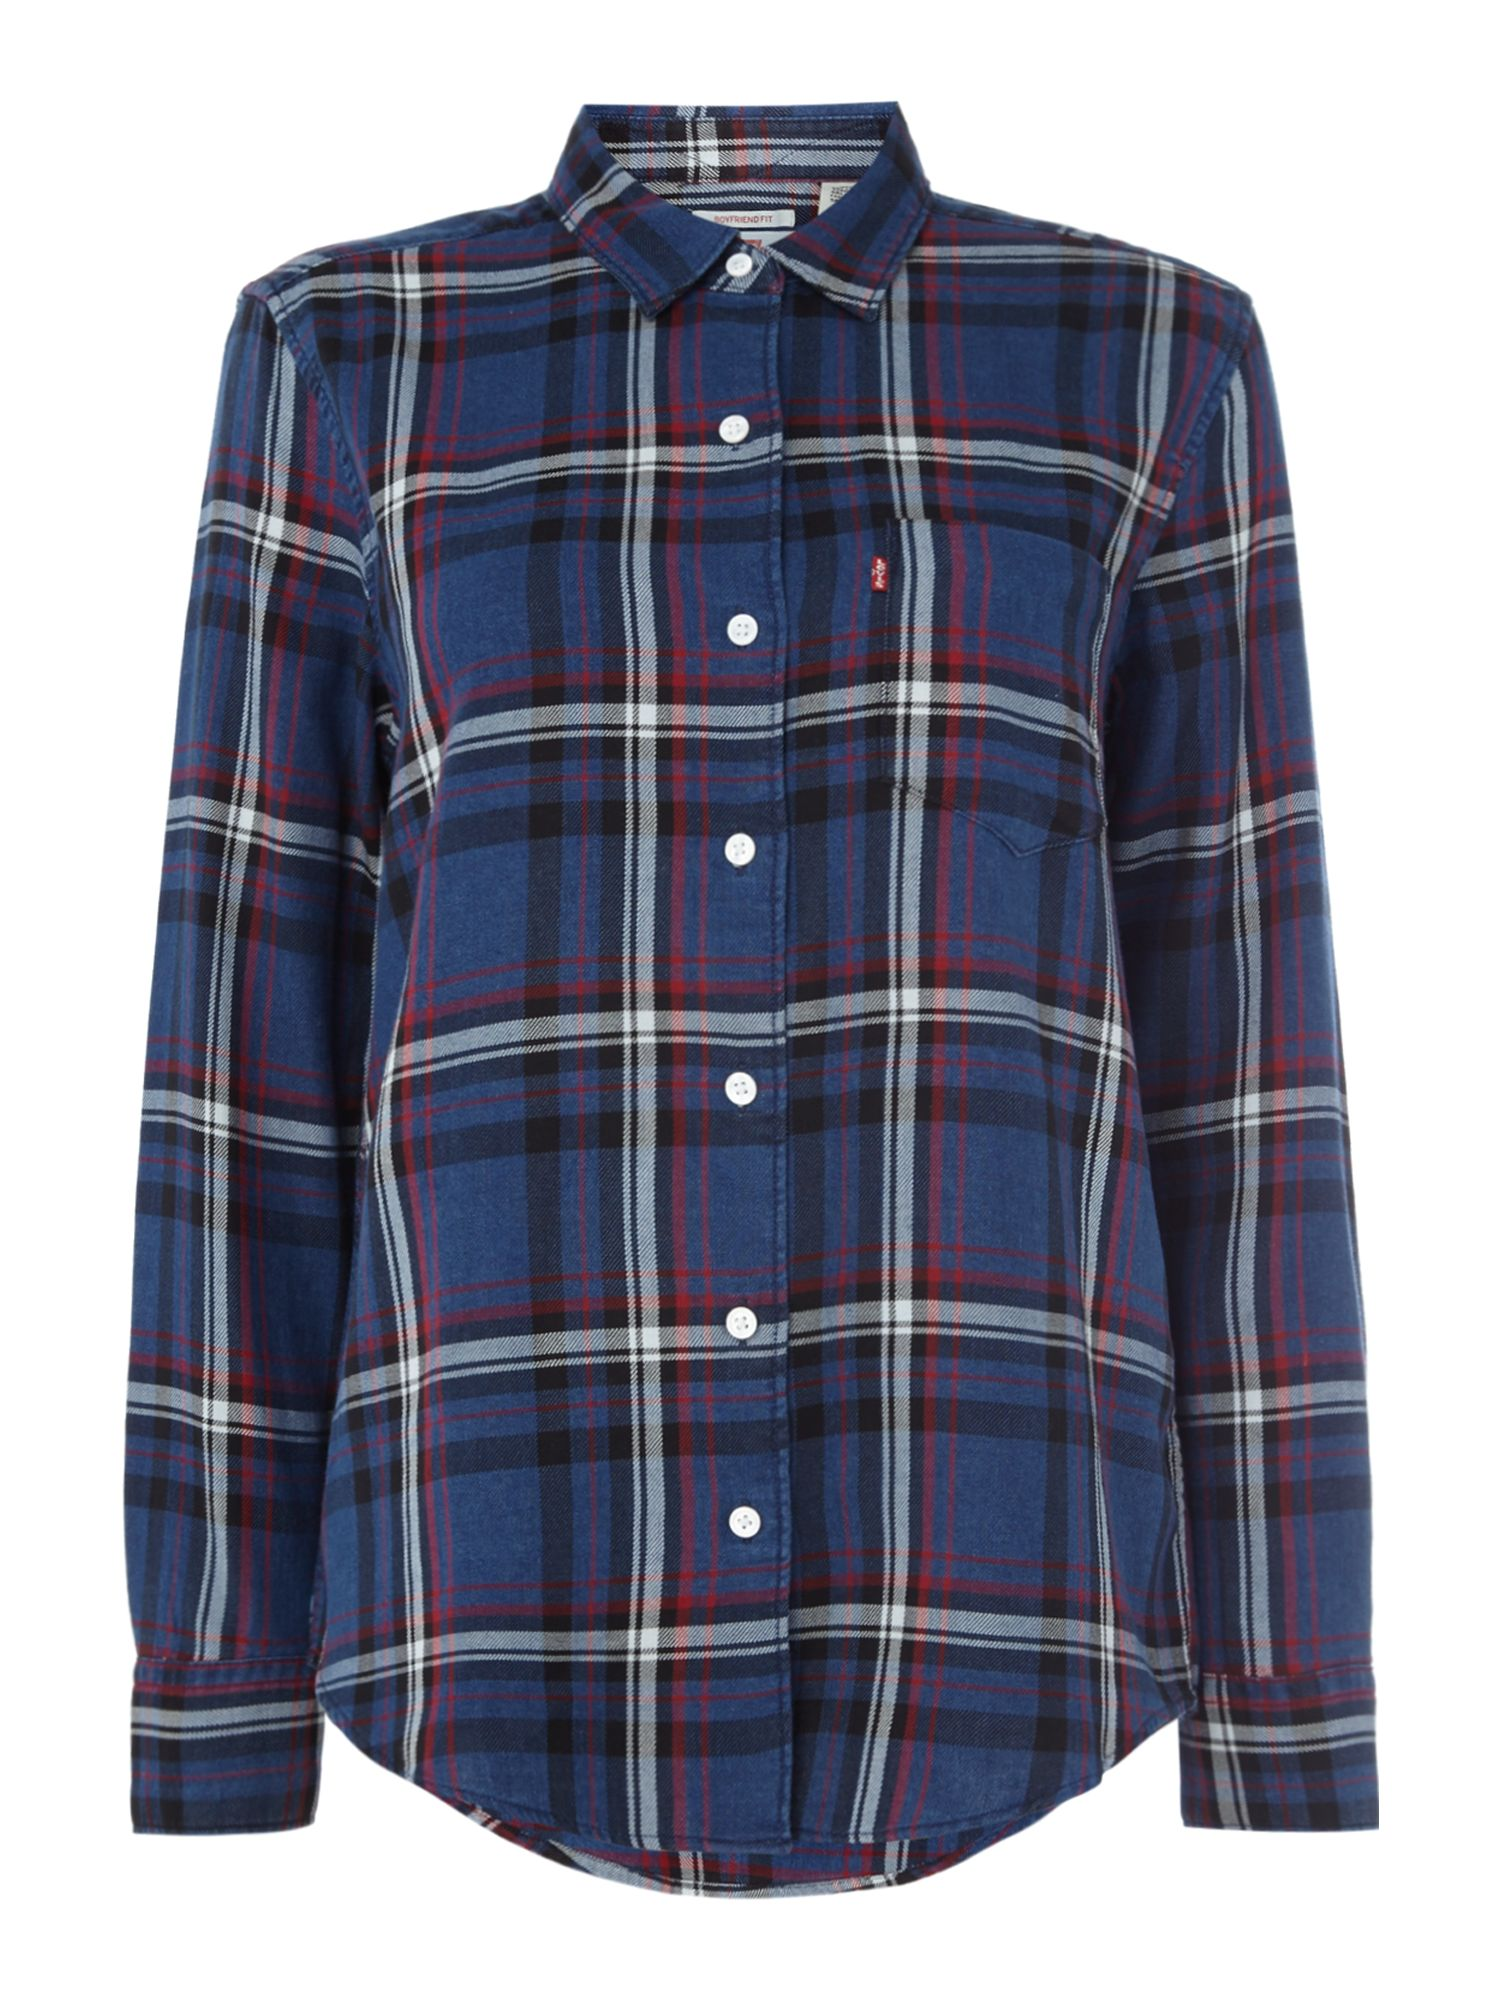 Levi's WT Checked Boyfriend Shirt with Pocket, Blue